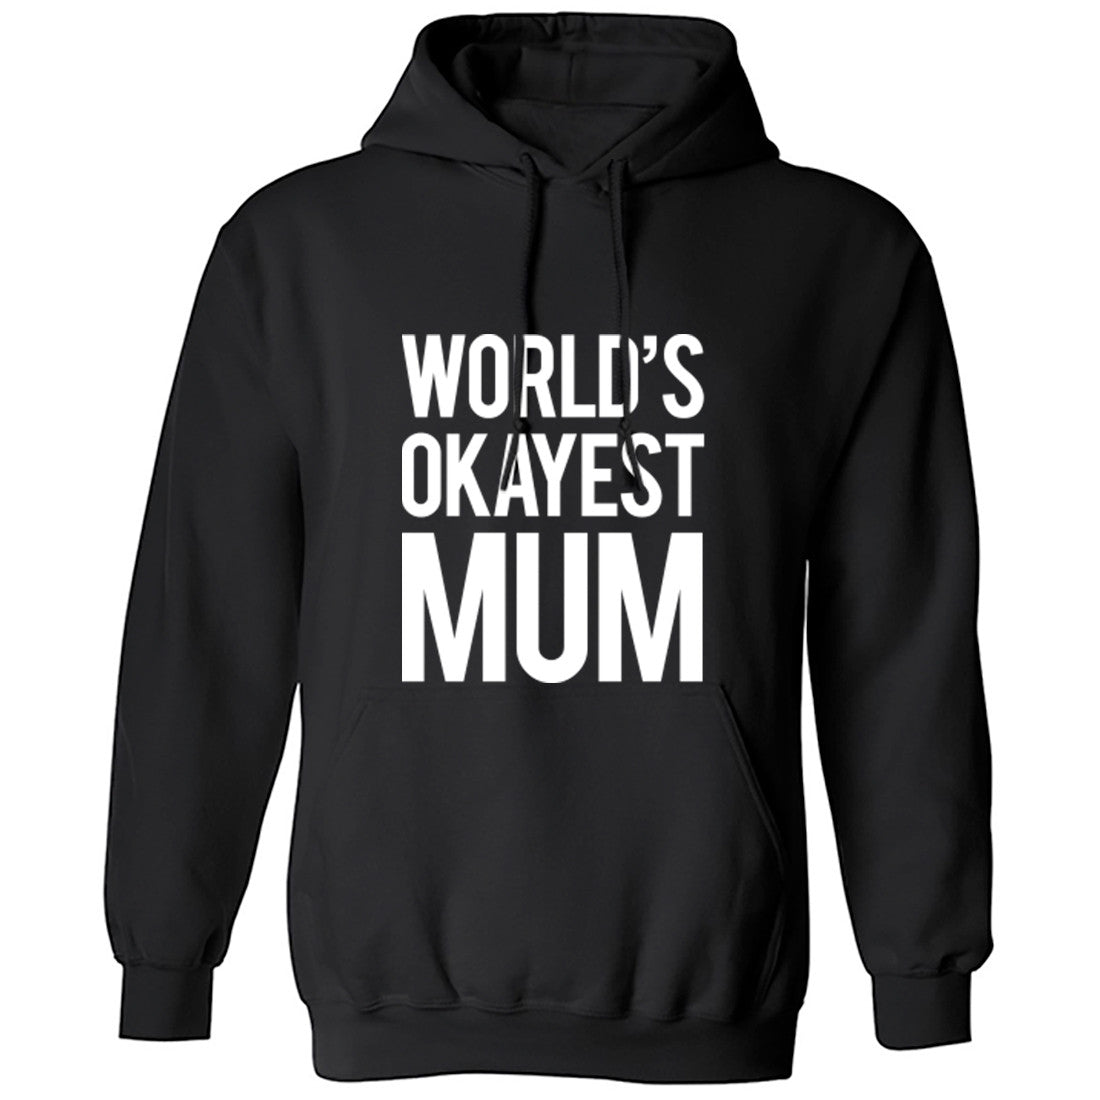 Worlds Okayest Mum Unisex Hoodie K0236 - Illustrated Identity Ltd.